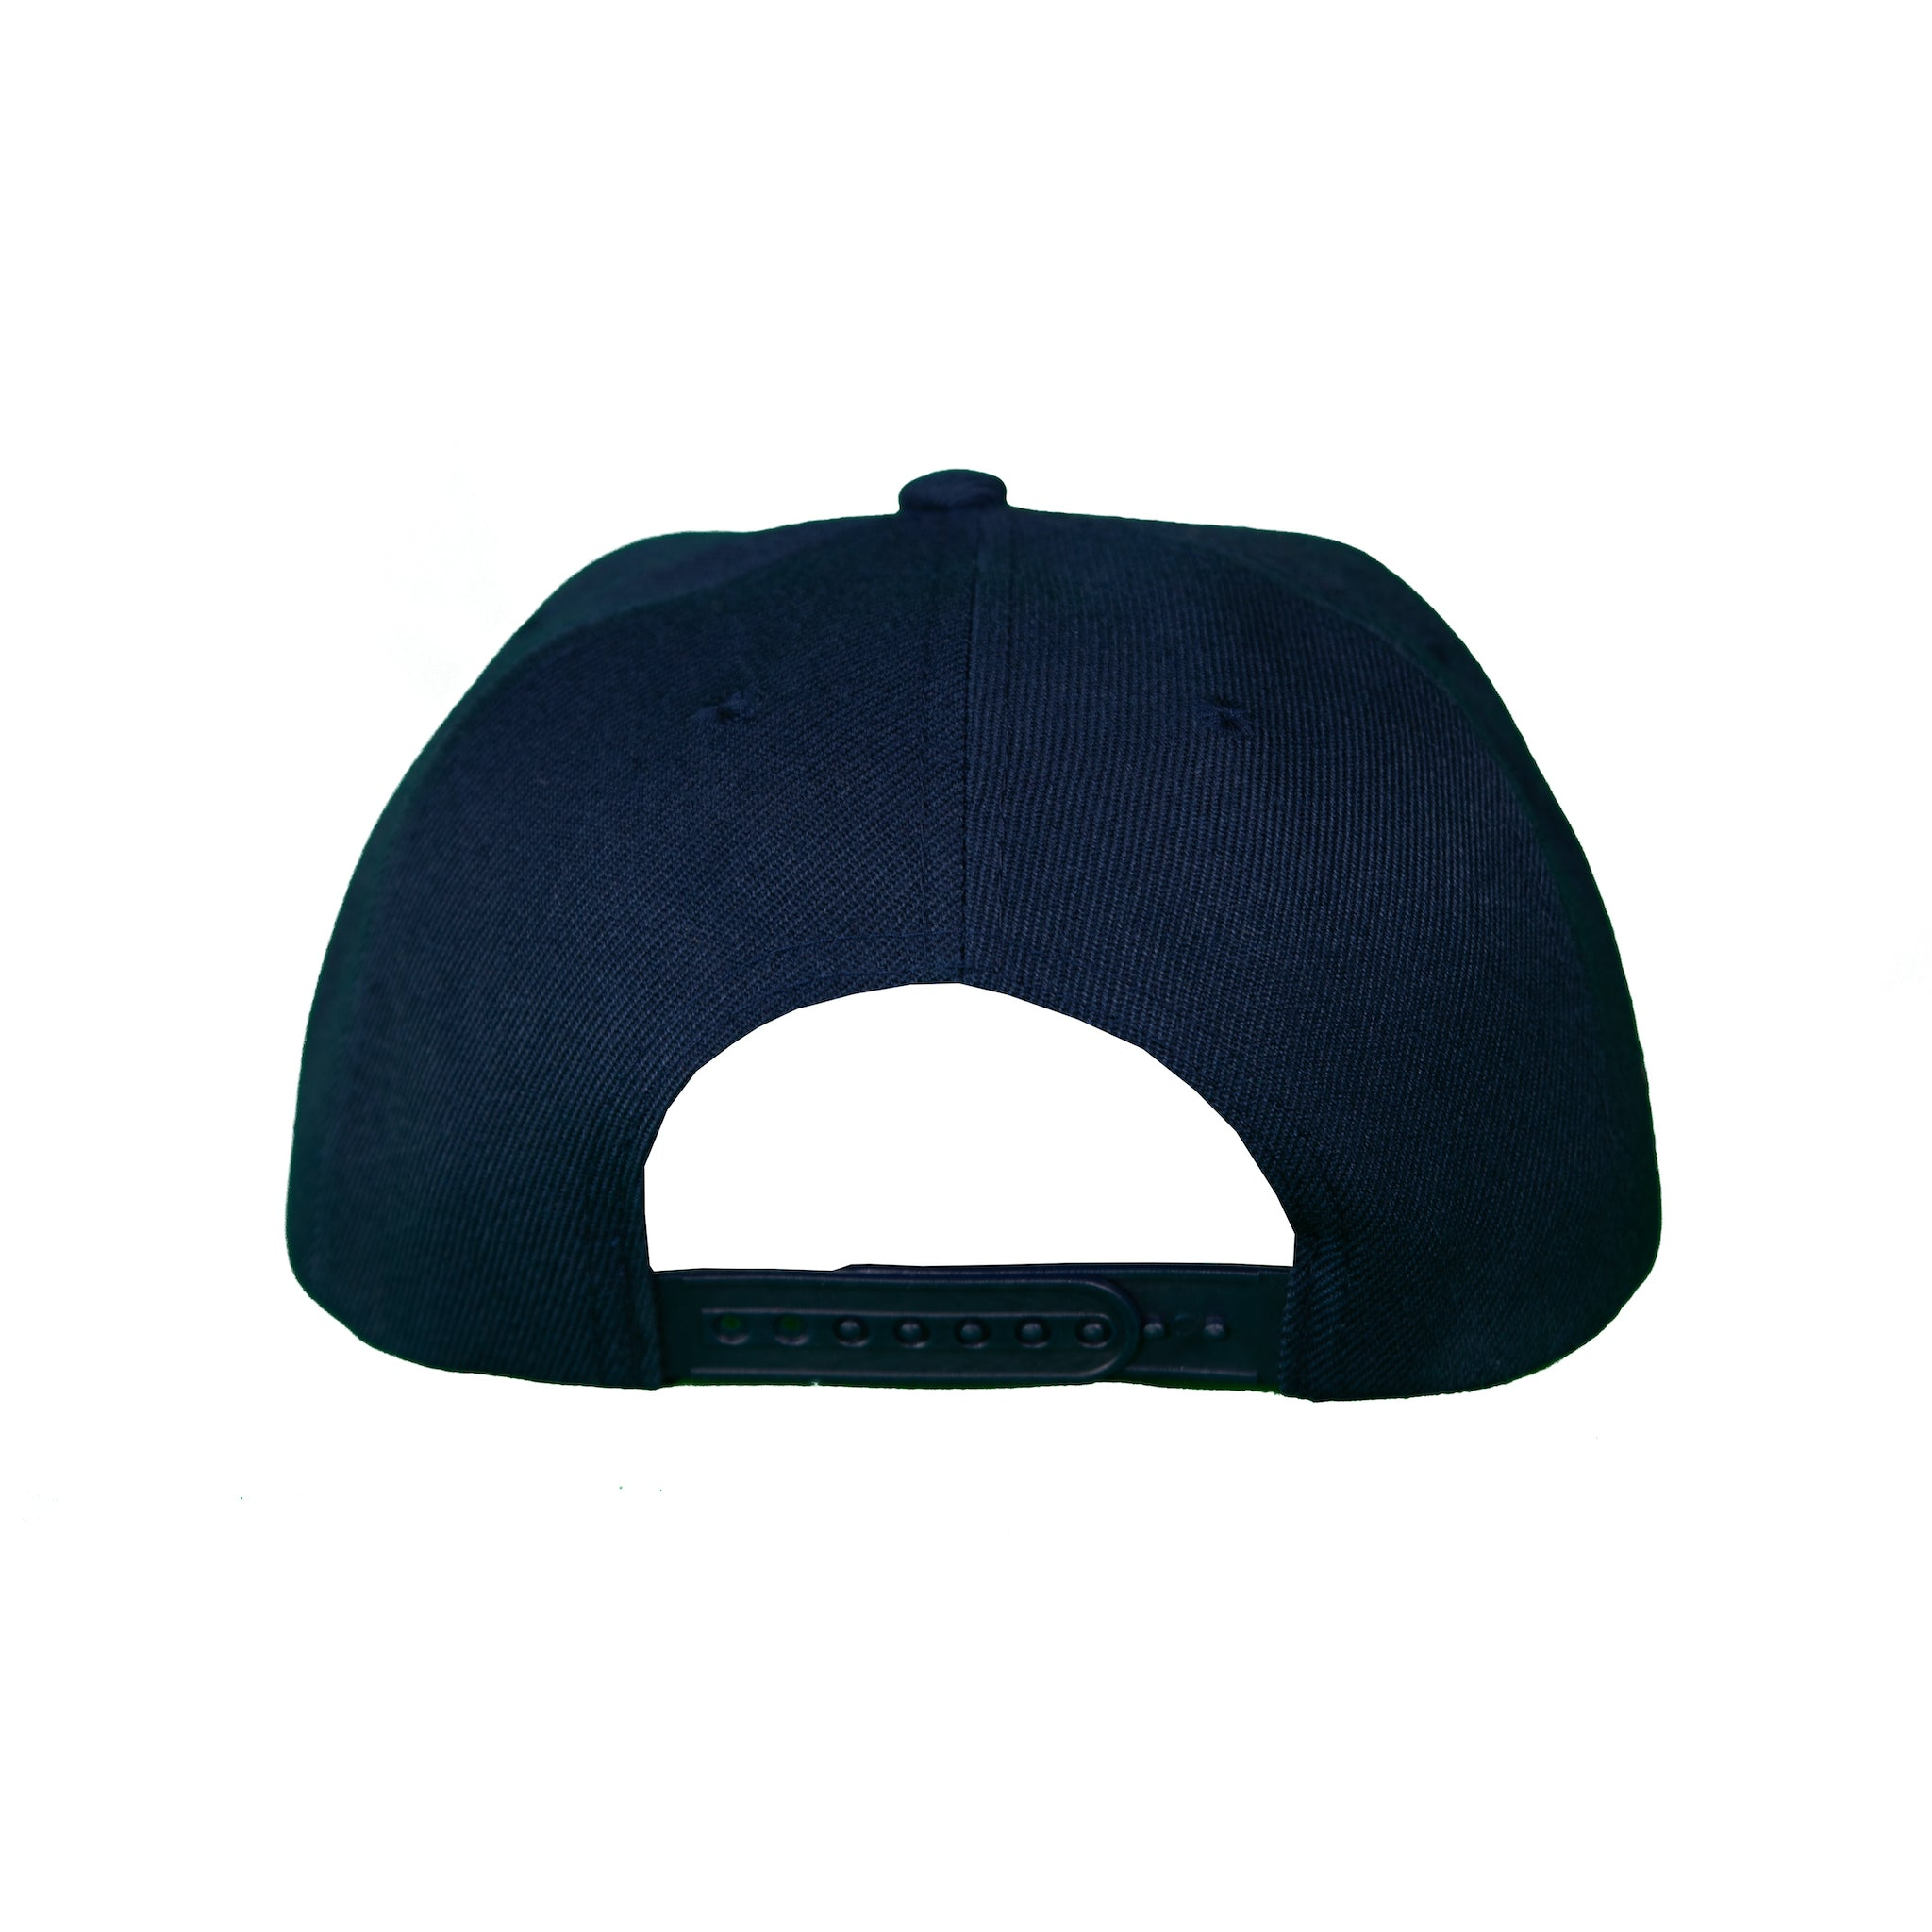 Basic Solid Pre-Bent Snap Back in Navy